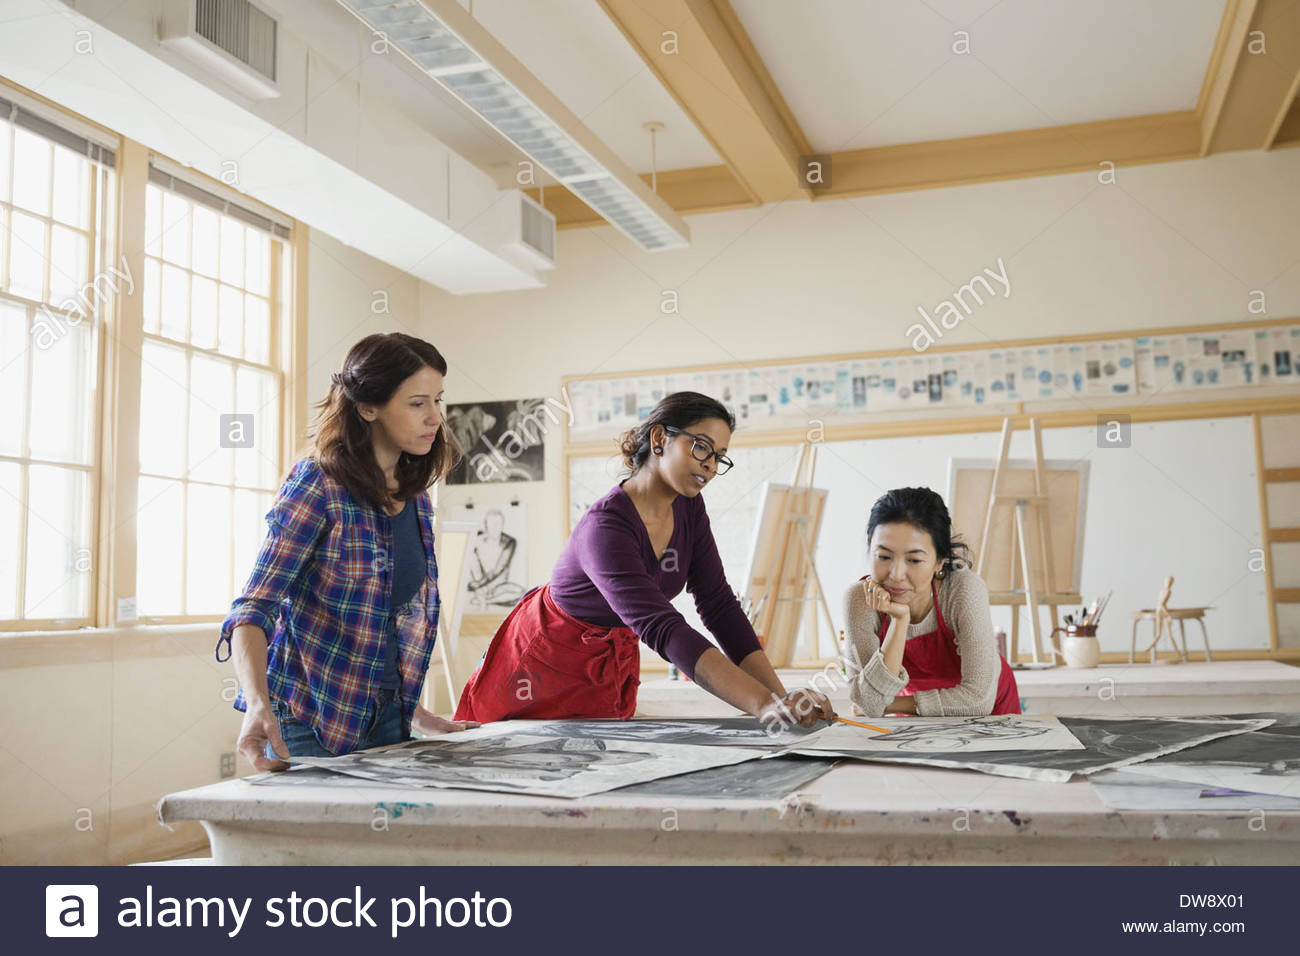 Students examining charcoal drawings in art class - Stock Image